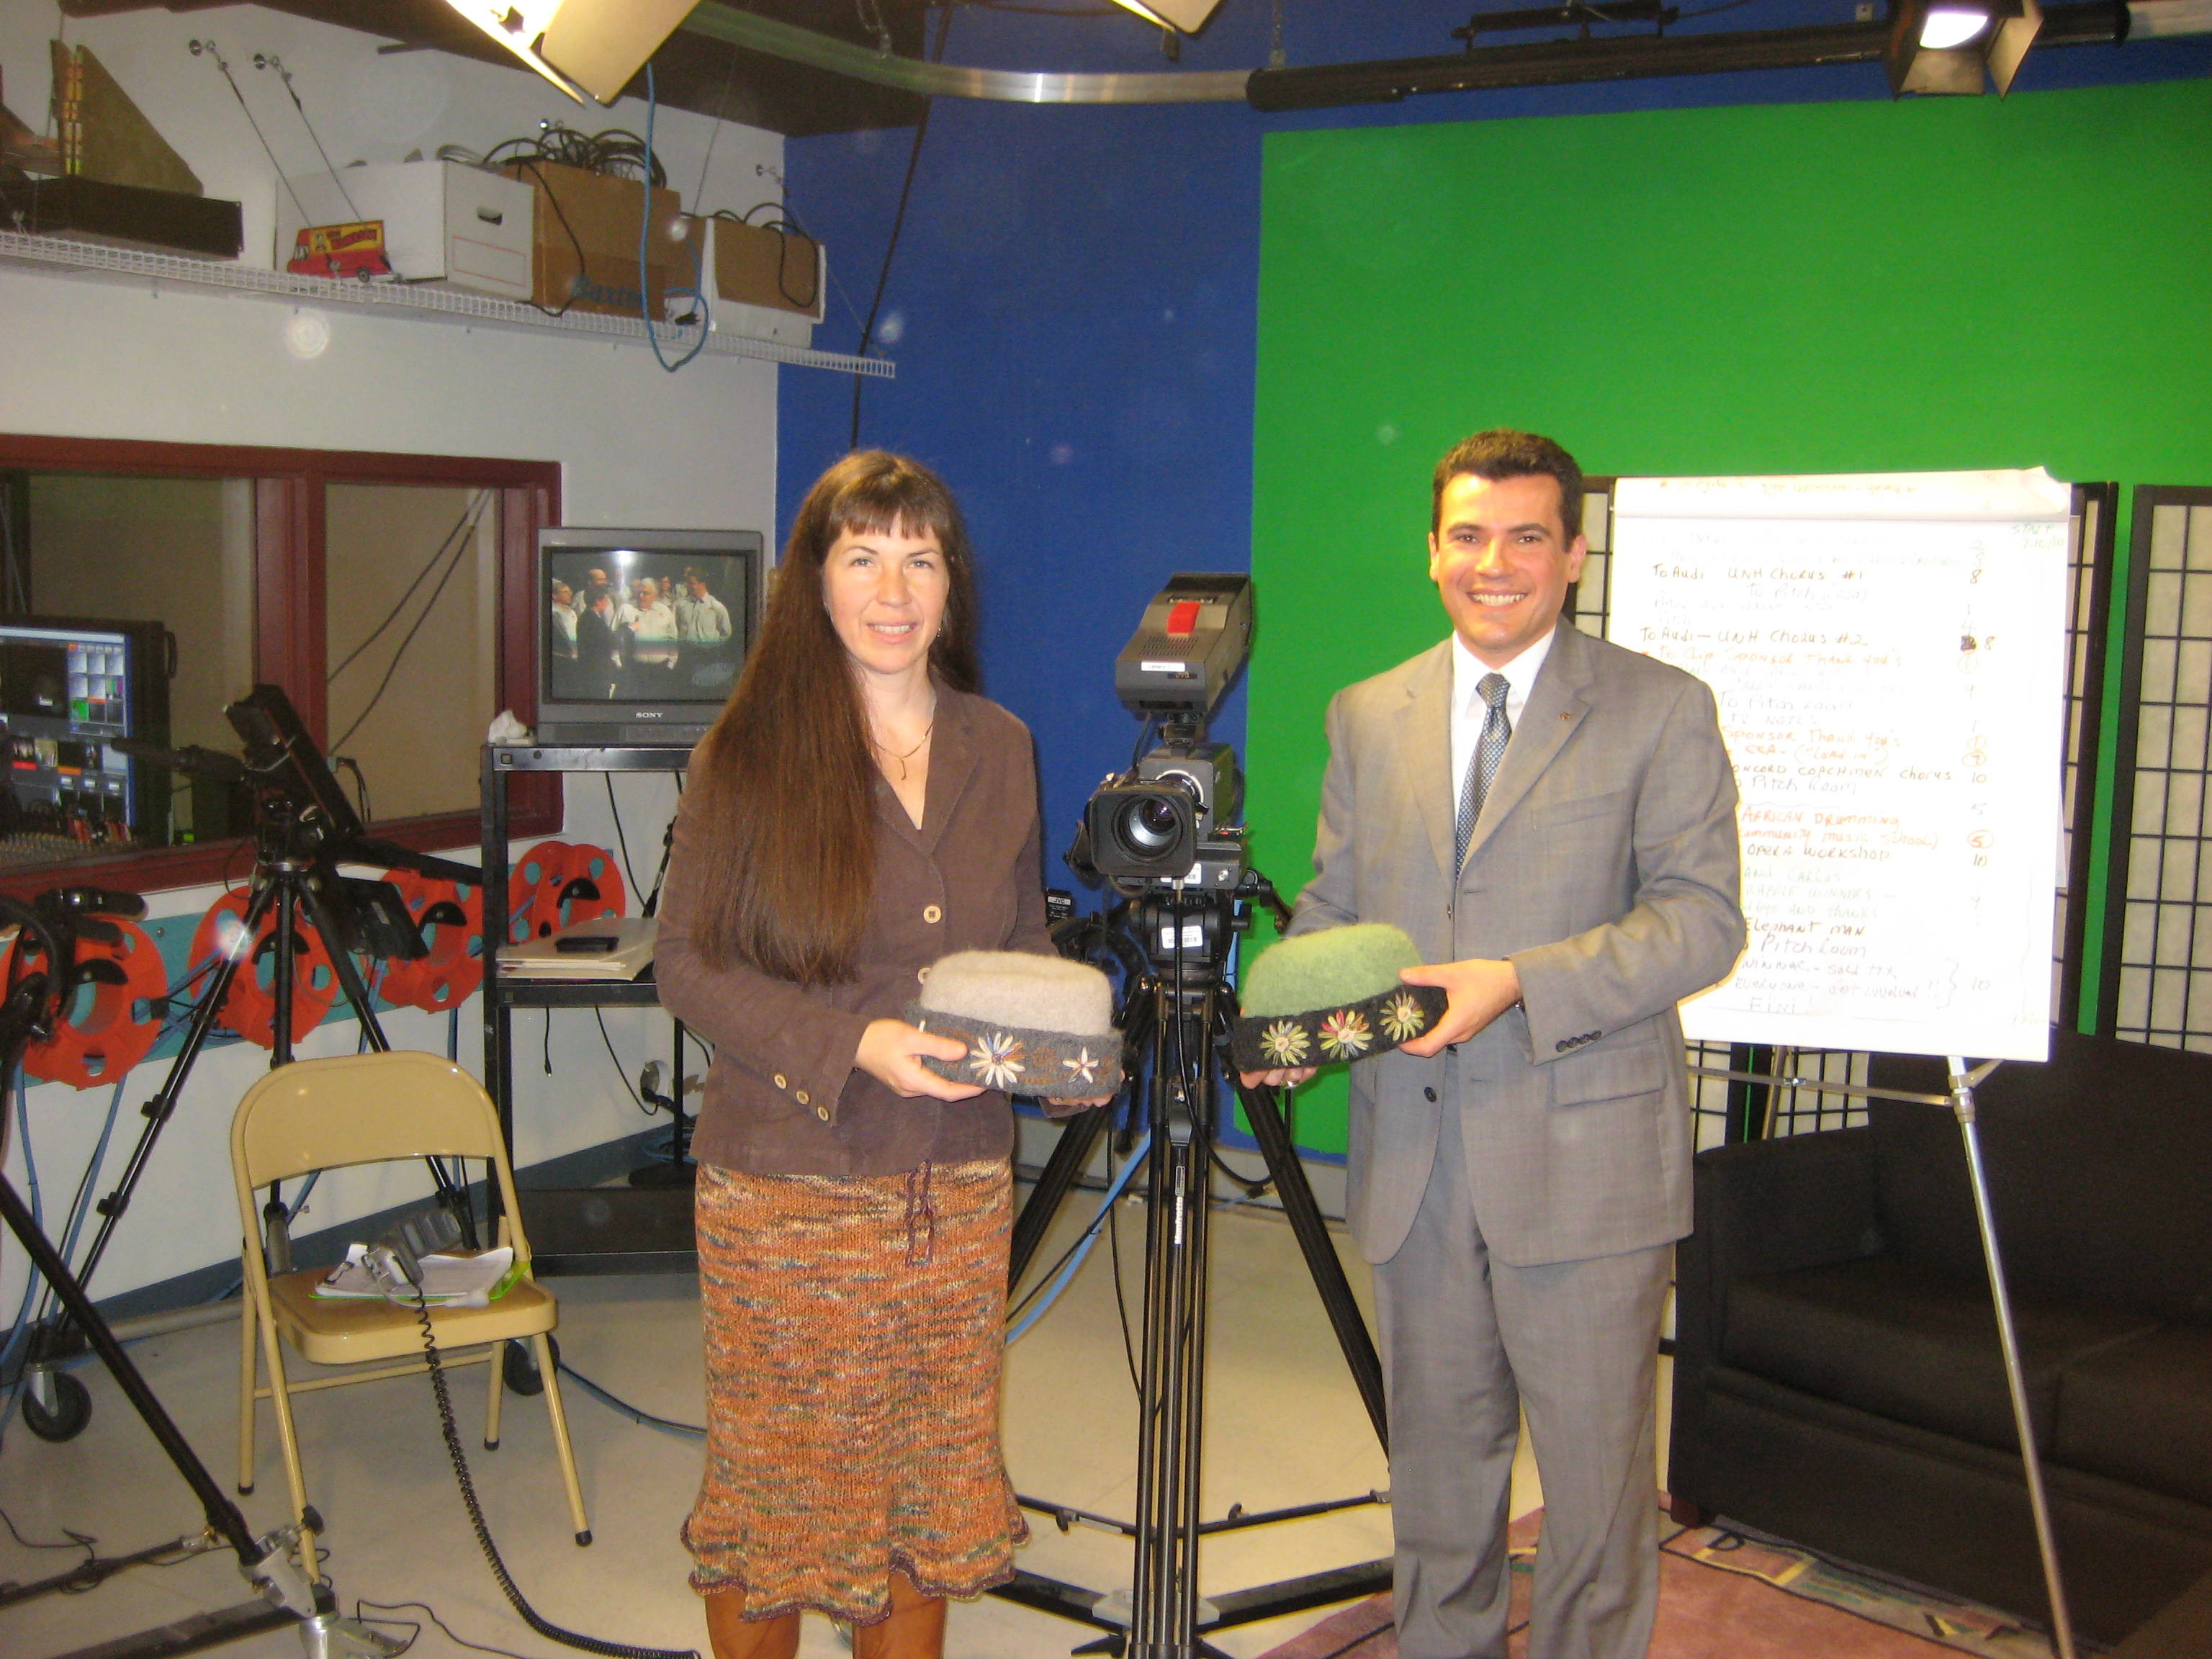 Checking out the camera equipment with Carlos at Concord Television.